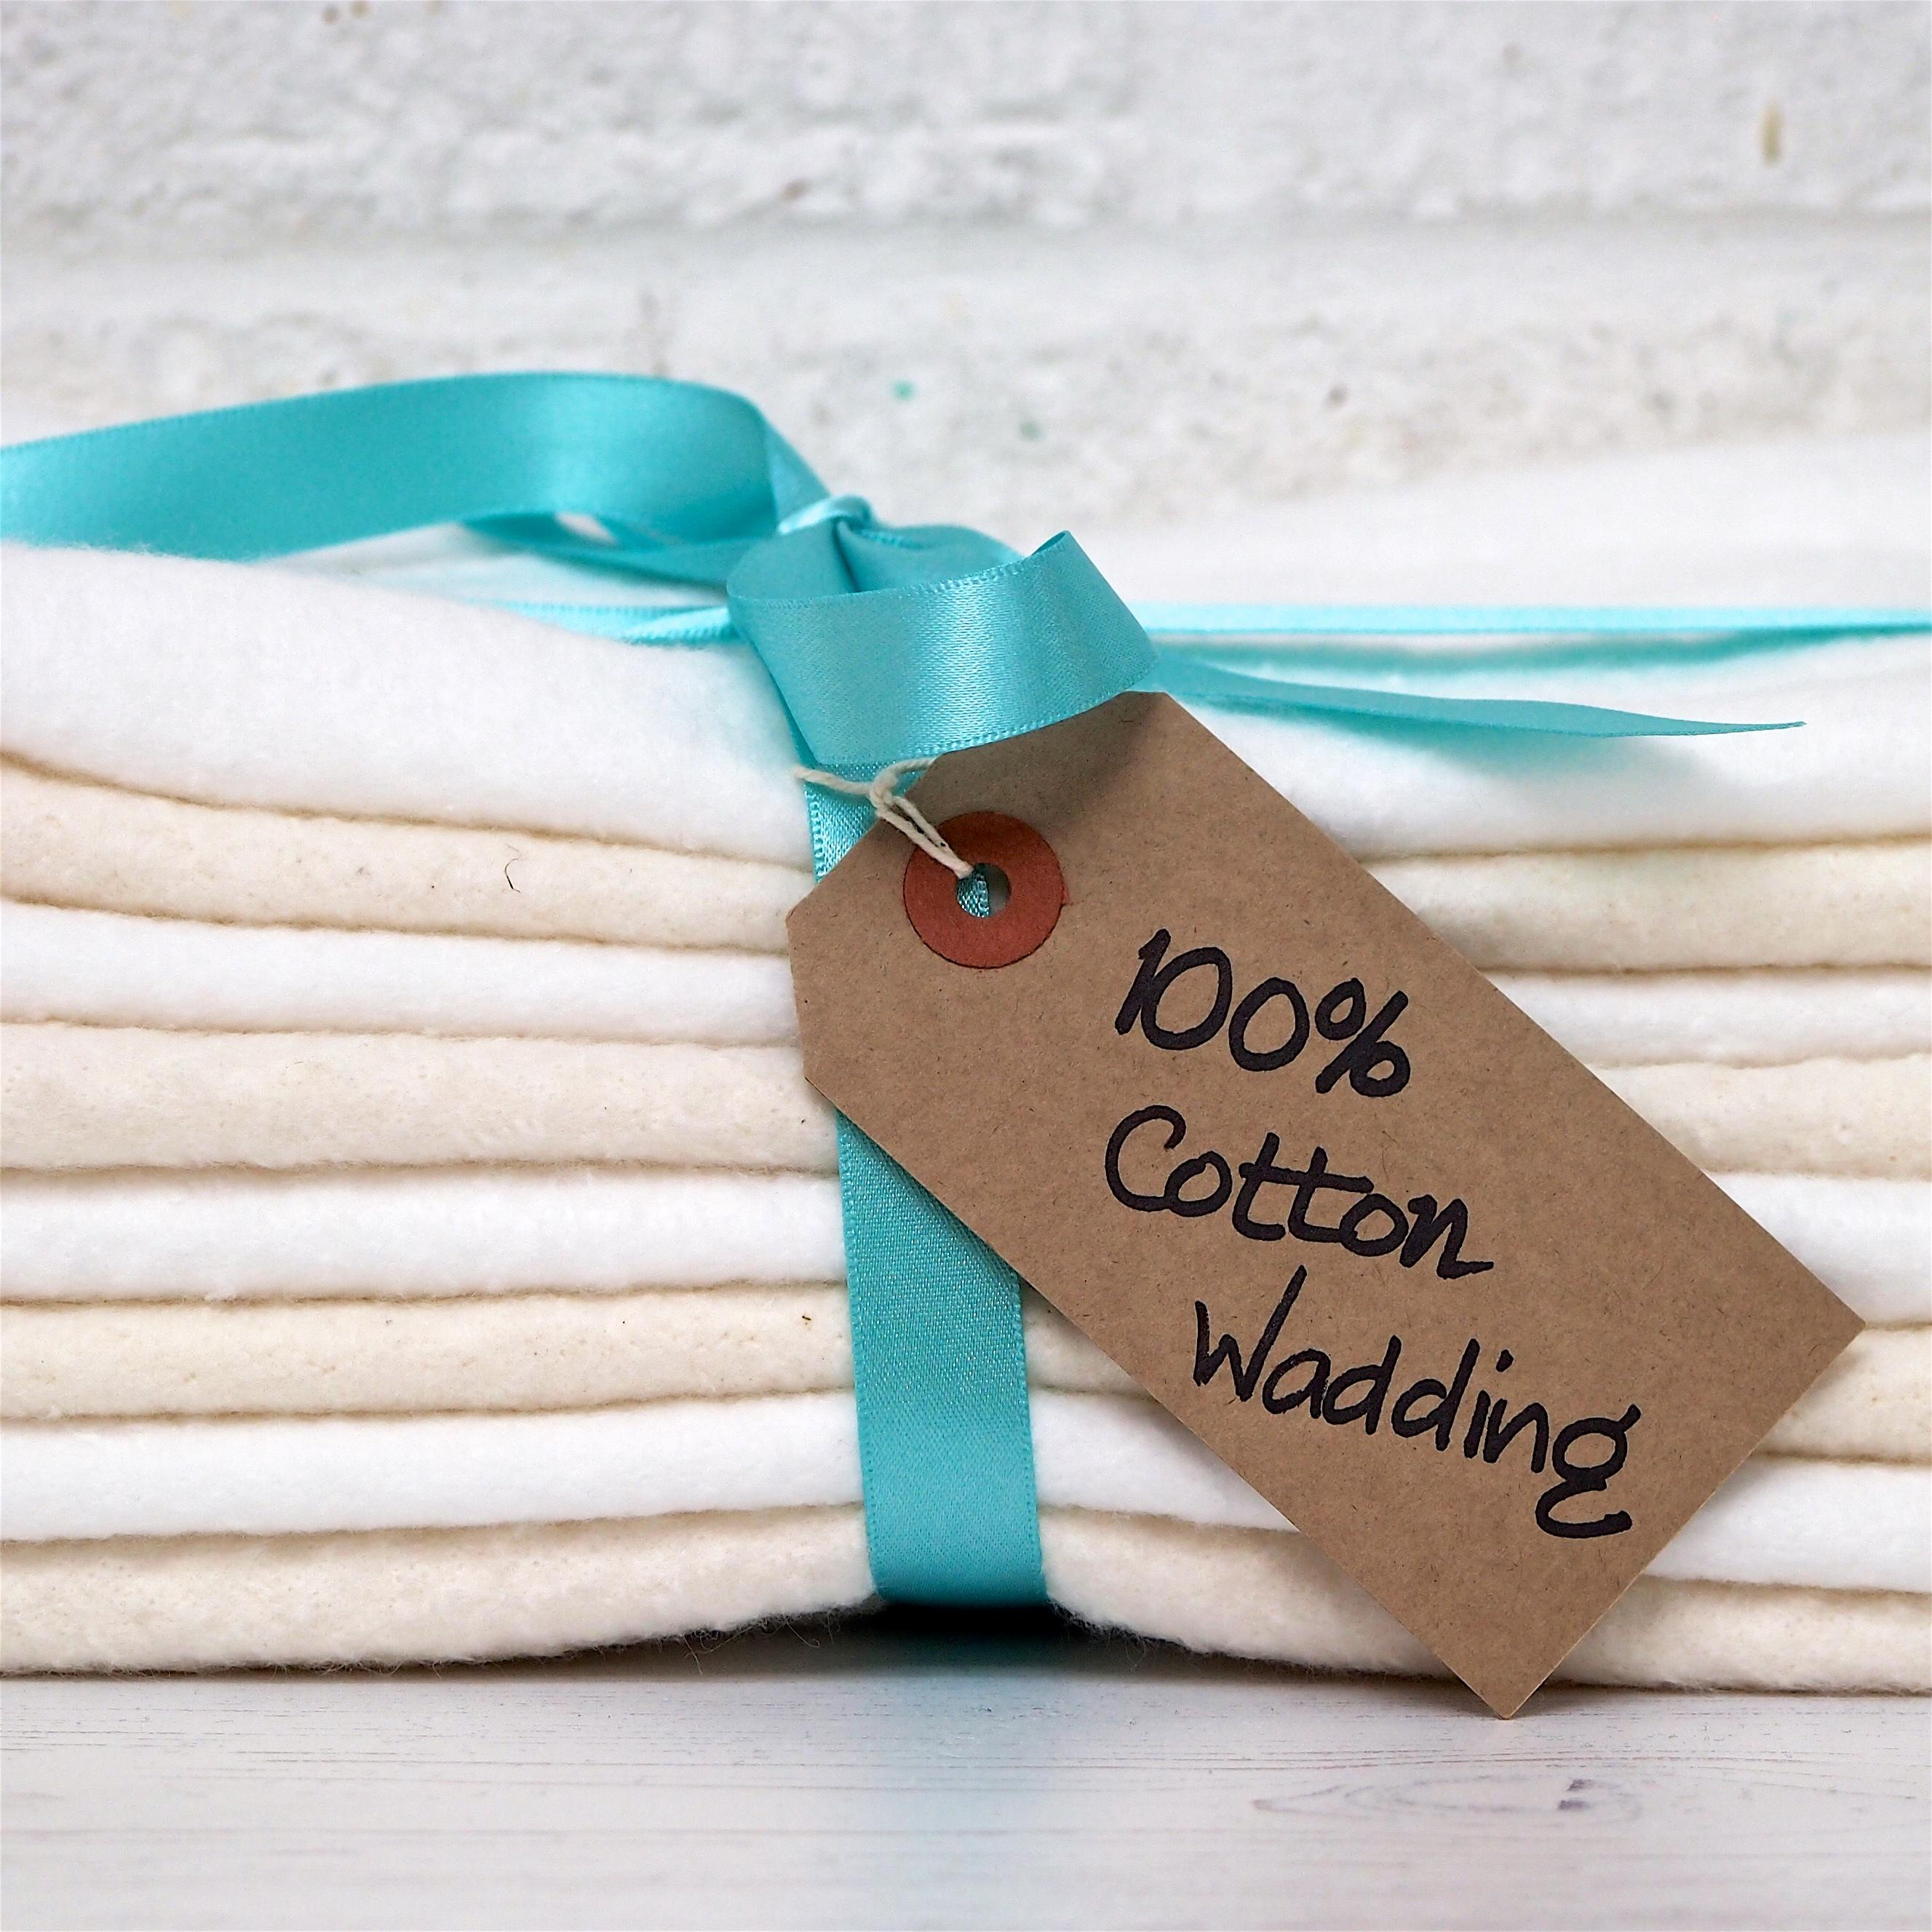 100% Cotton Wadding/Batting for quilting